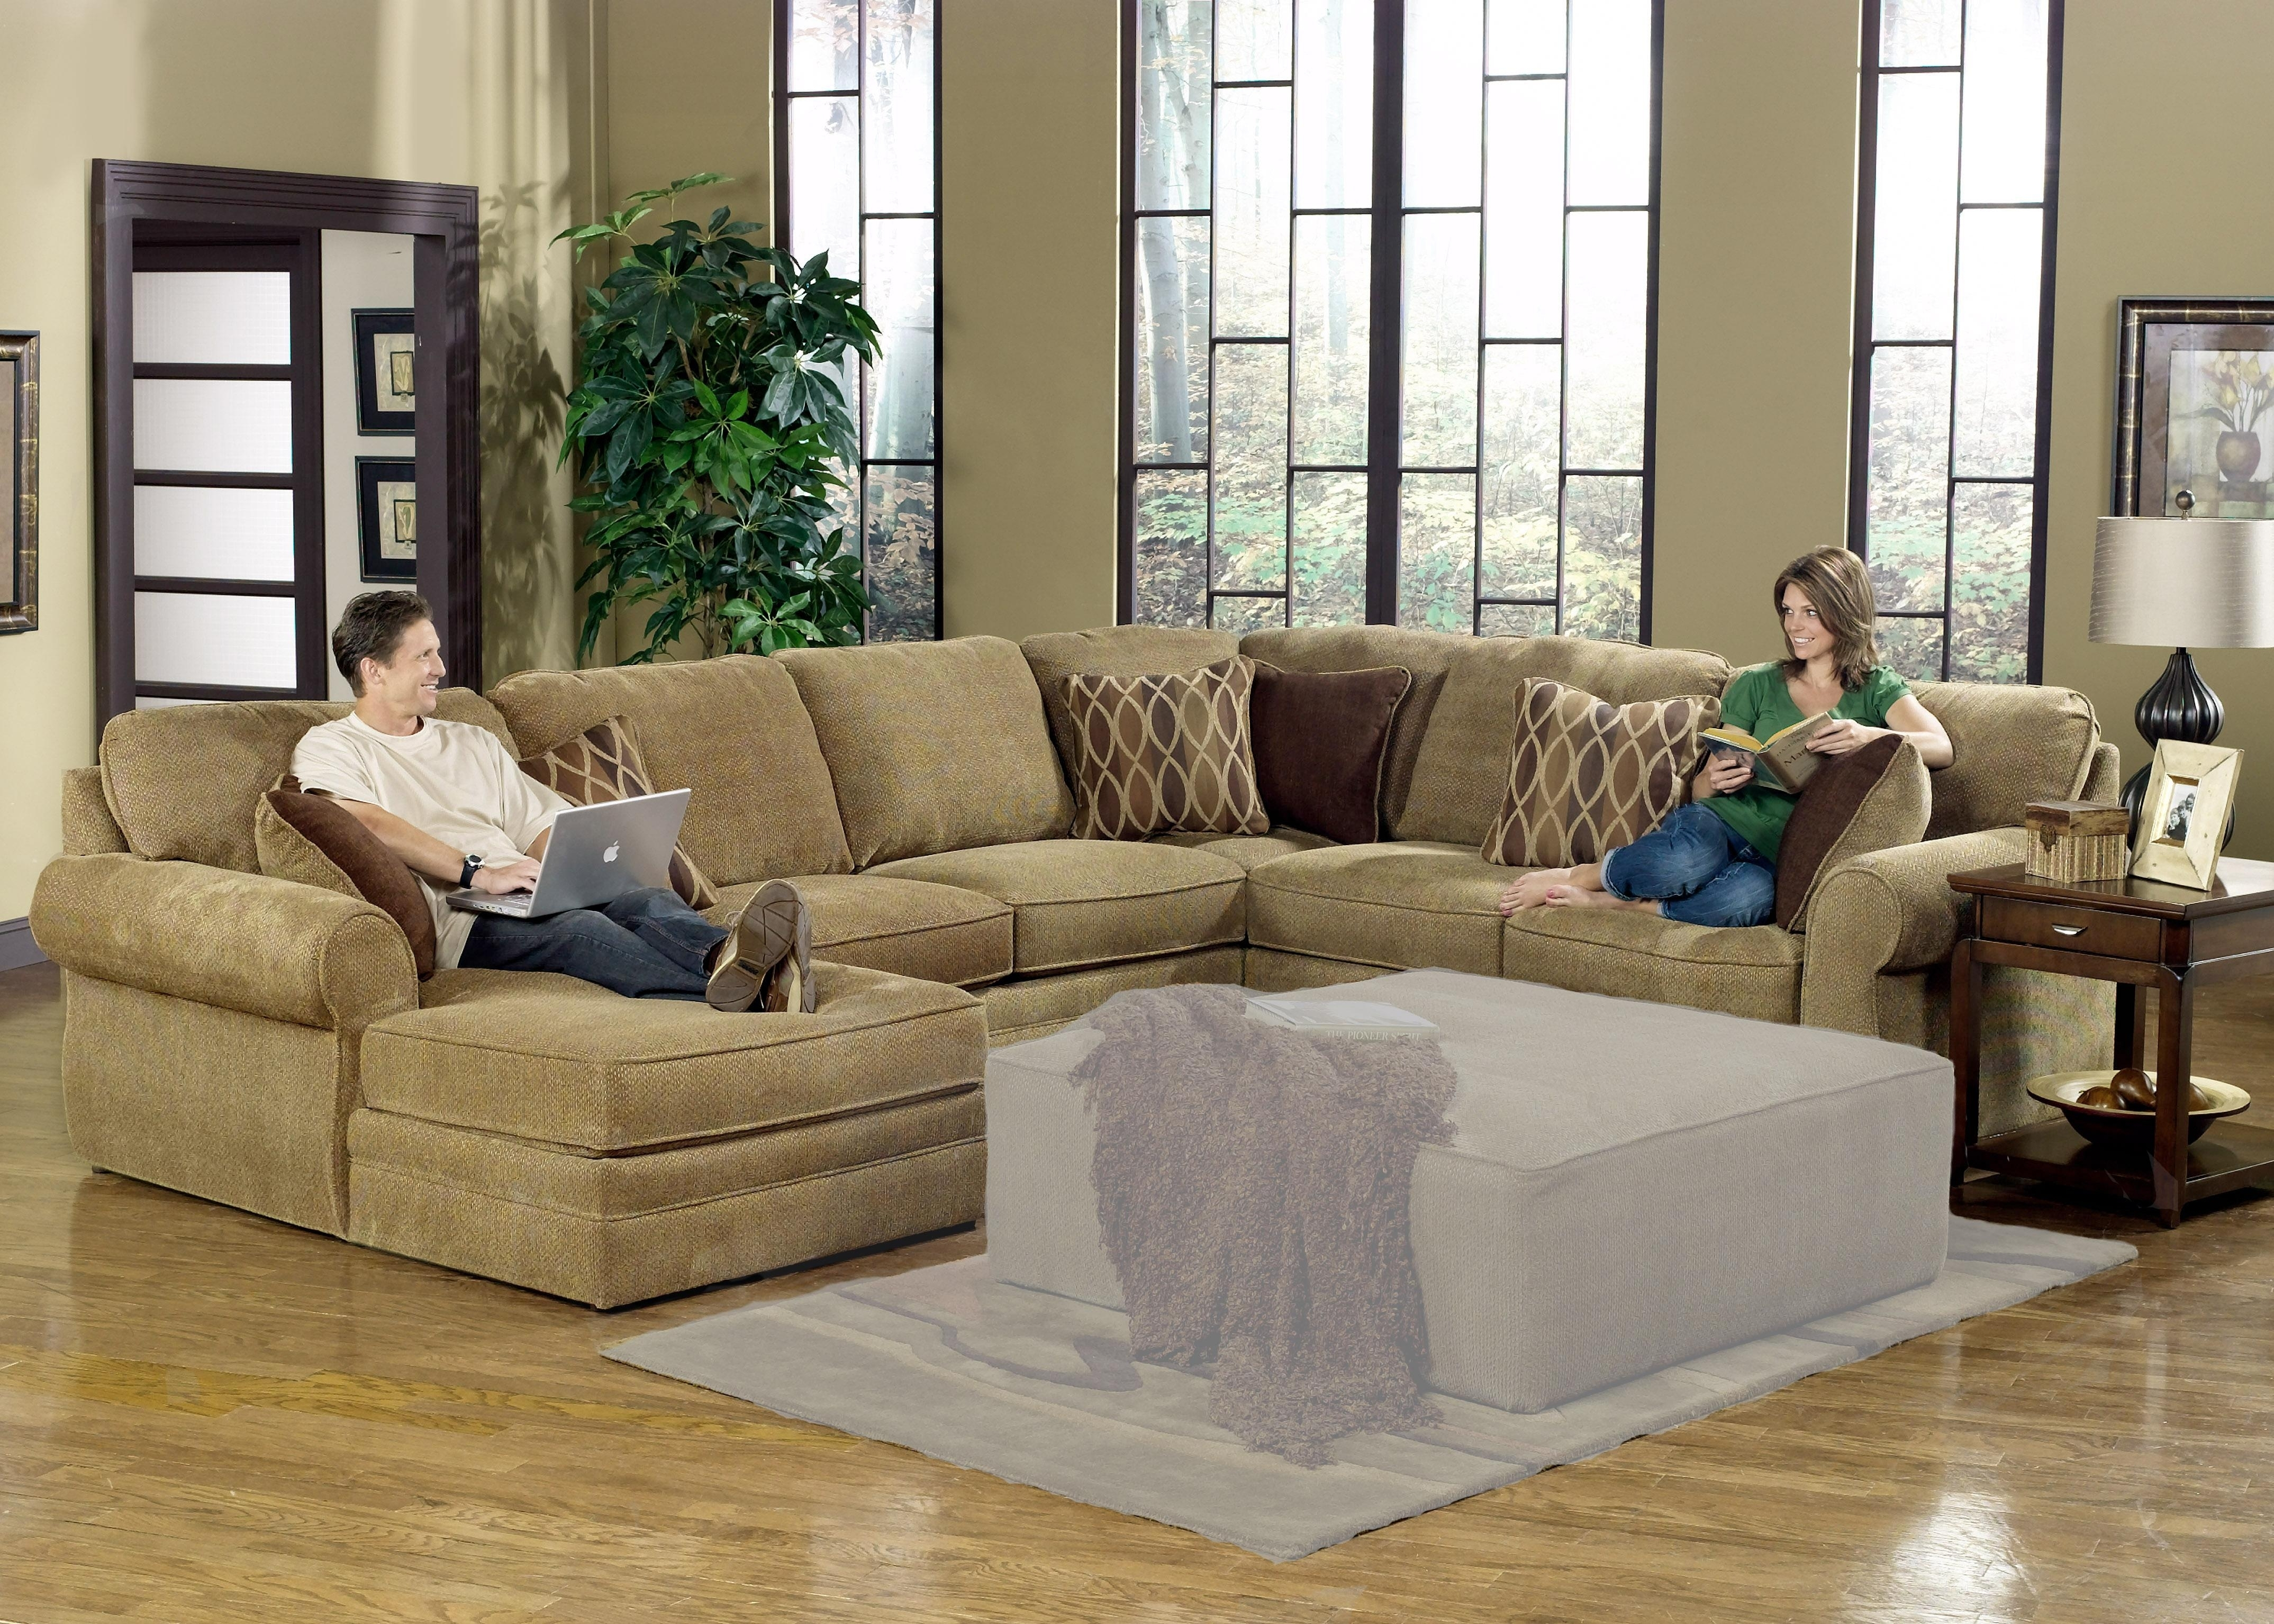 Remarkable Large Sectional Sofas With Chaise 39 With Additional In Ottawa Sectional Sofas (View 2 of 10)